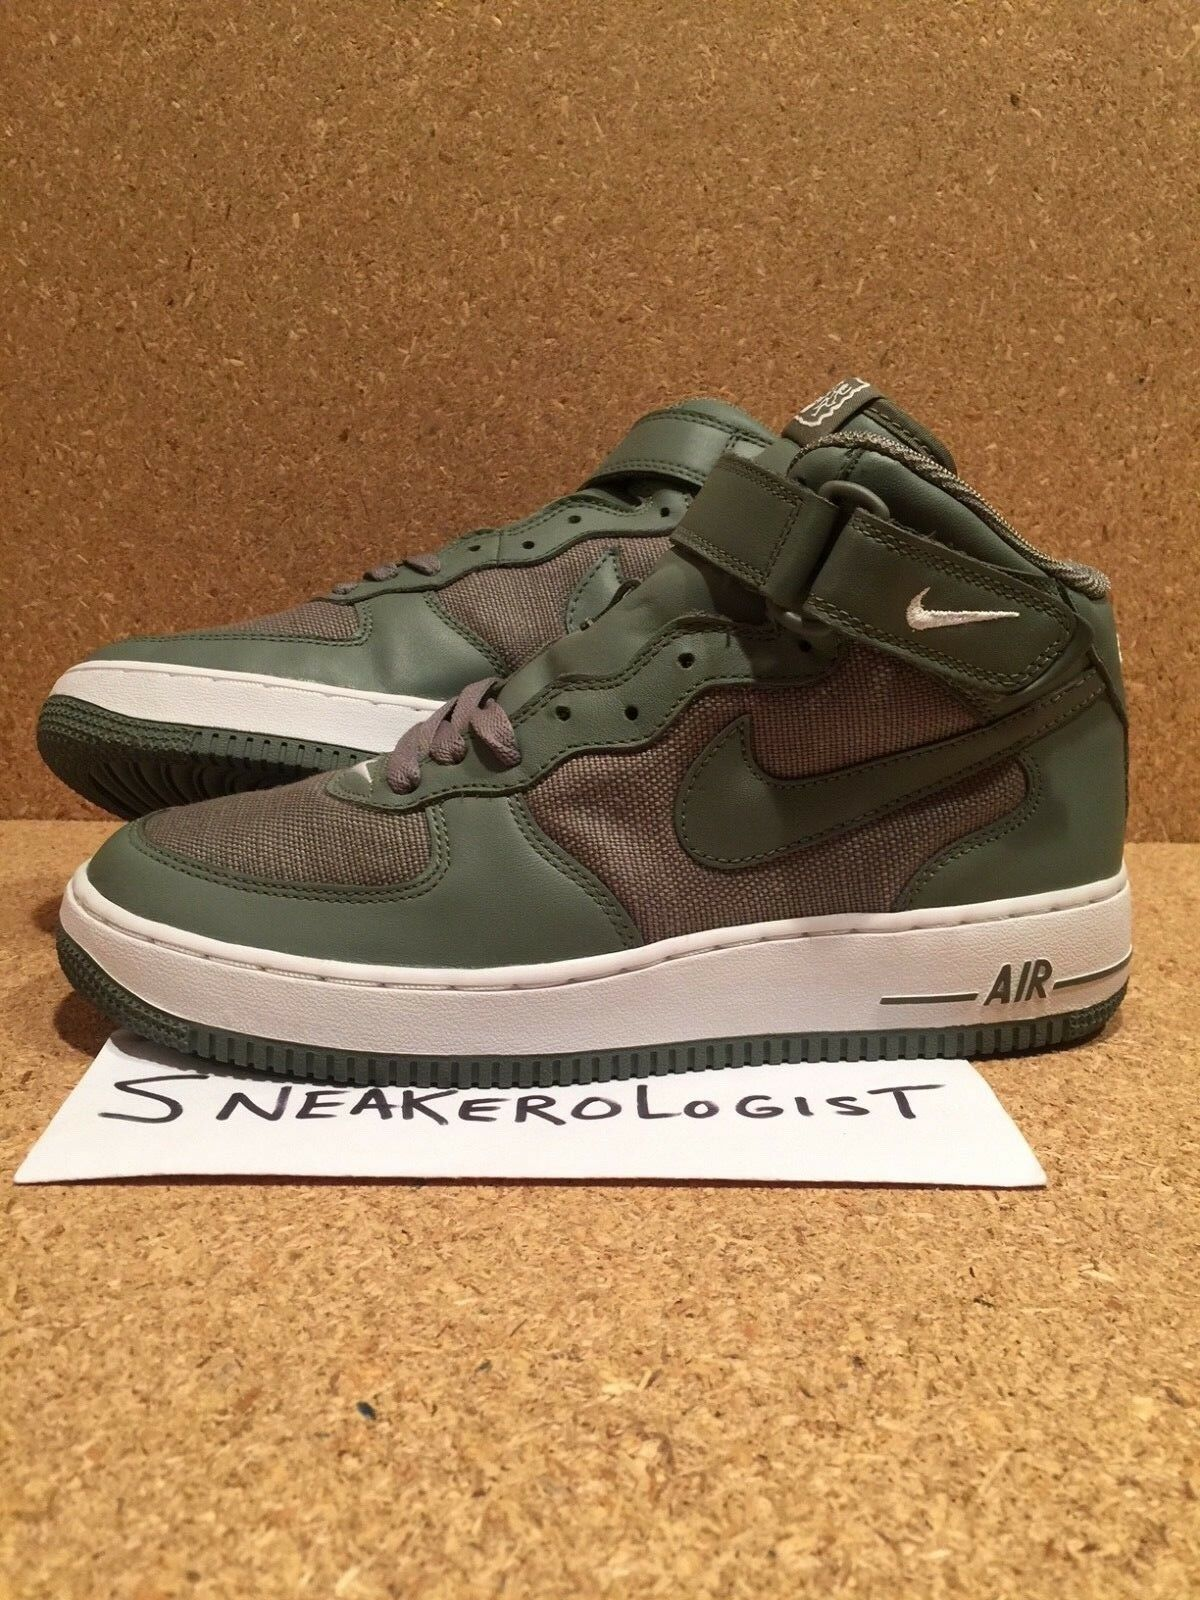 9694cccbfc NIKE AIR FORCE 1 MID SZ 9 drum island classic olive 2005 vintage rare le  classic